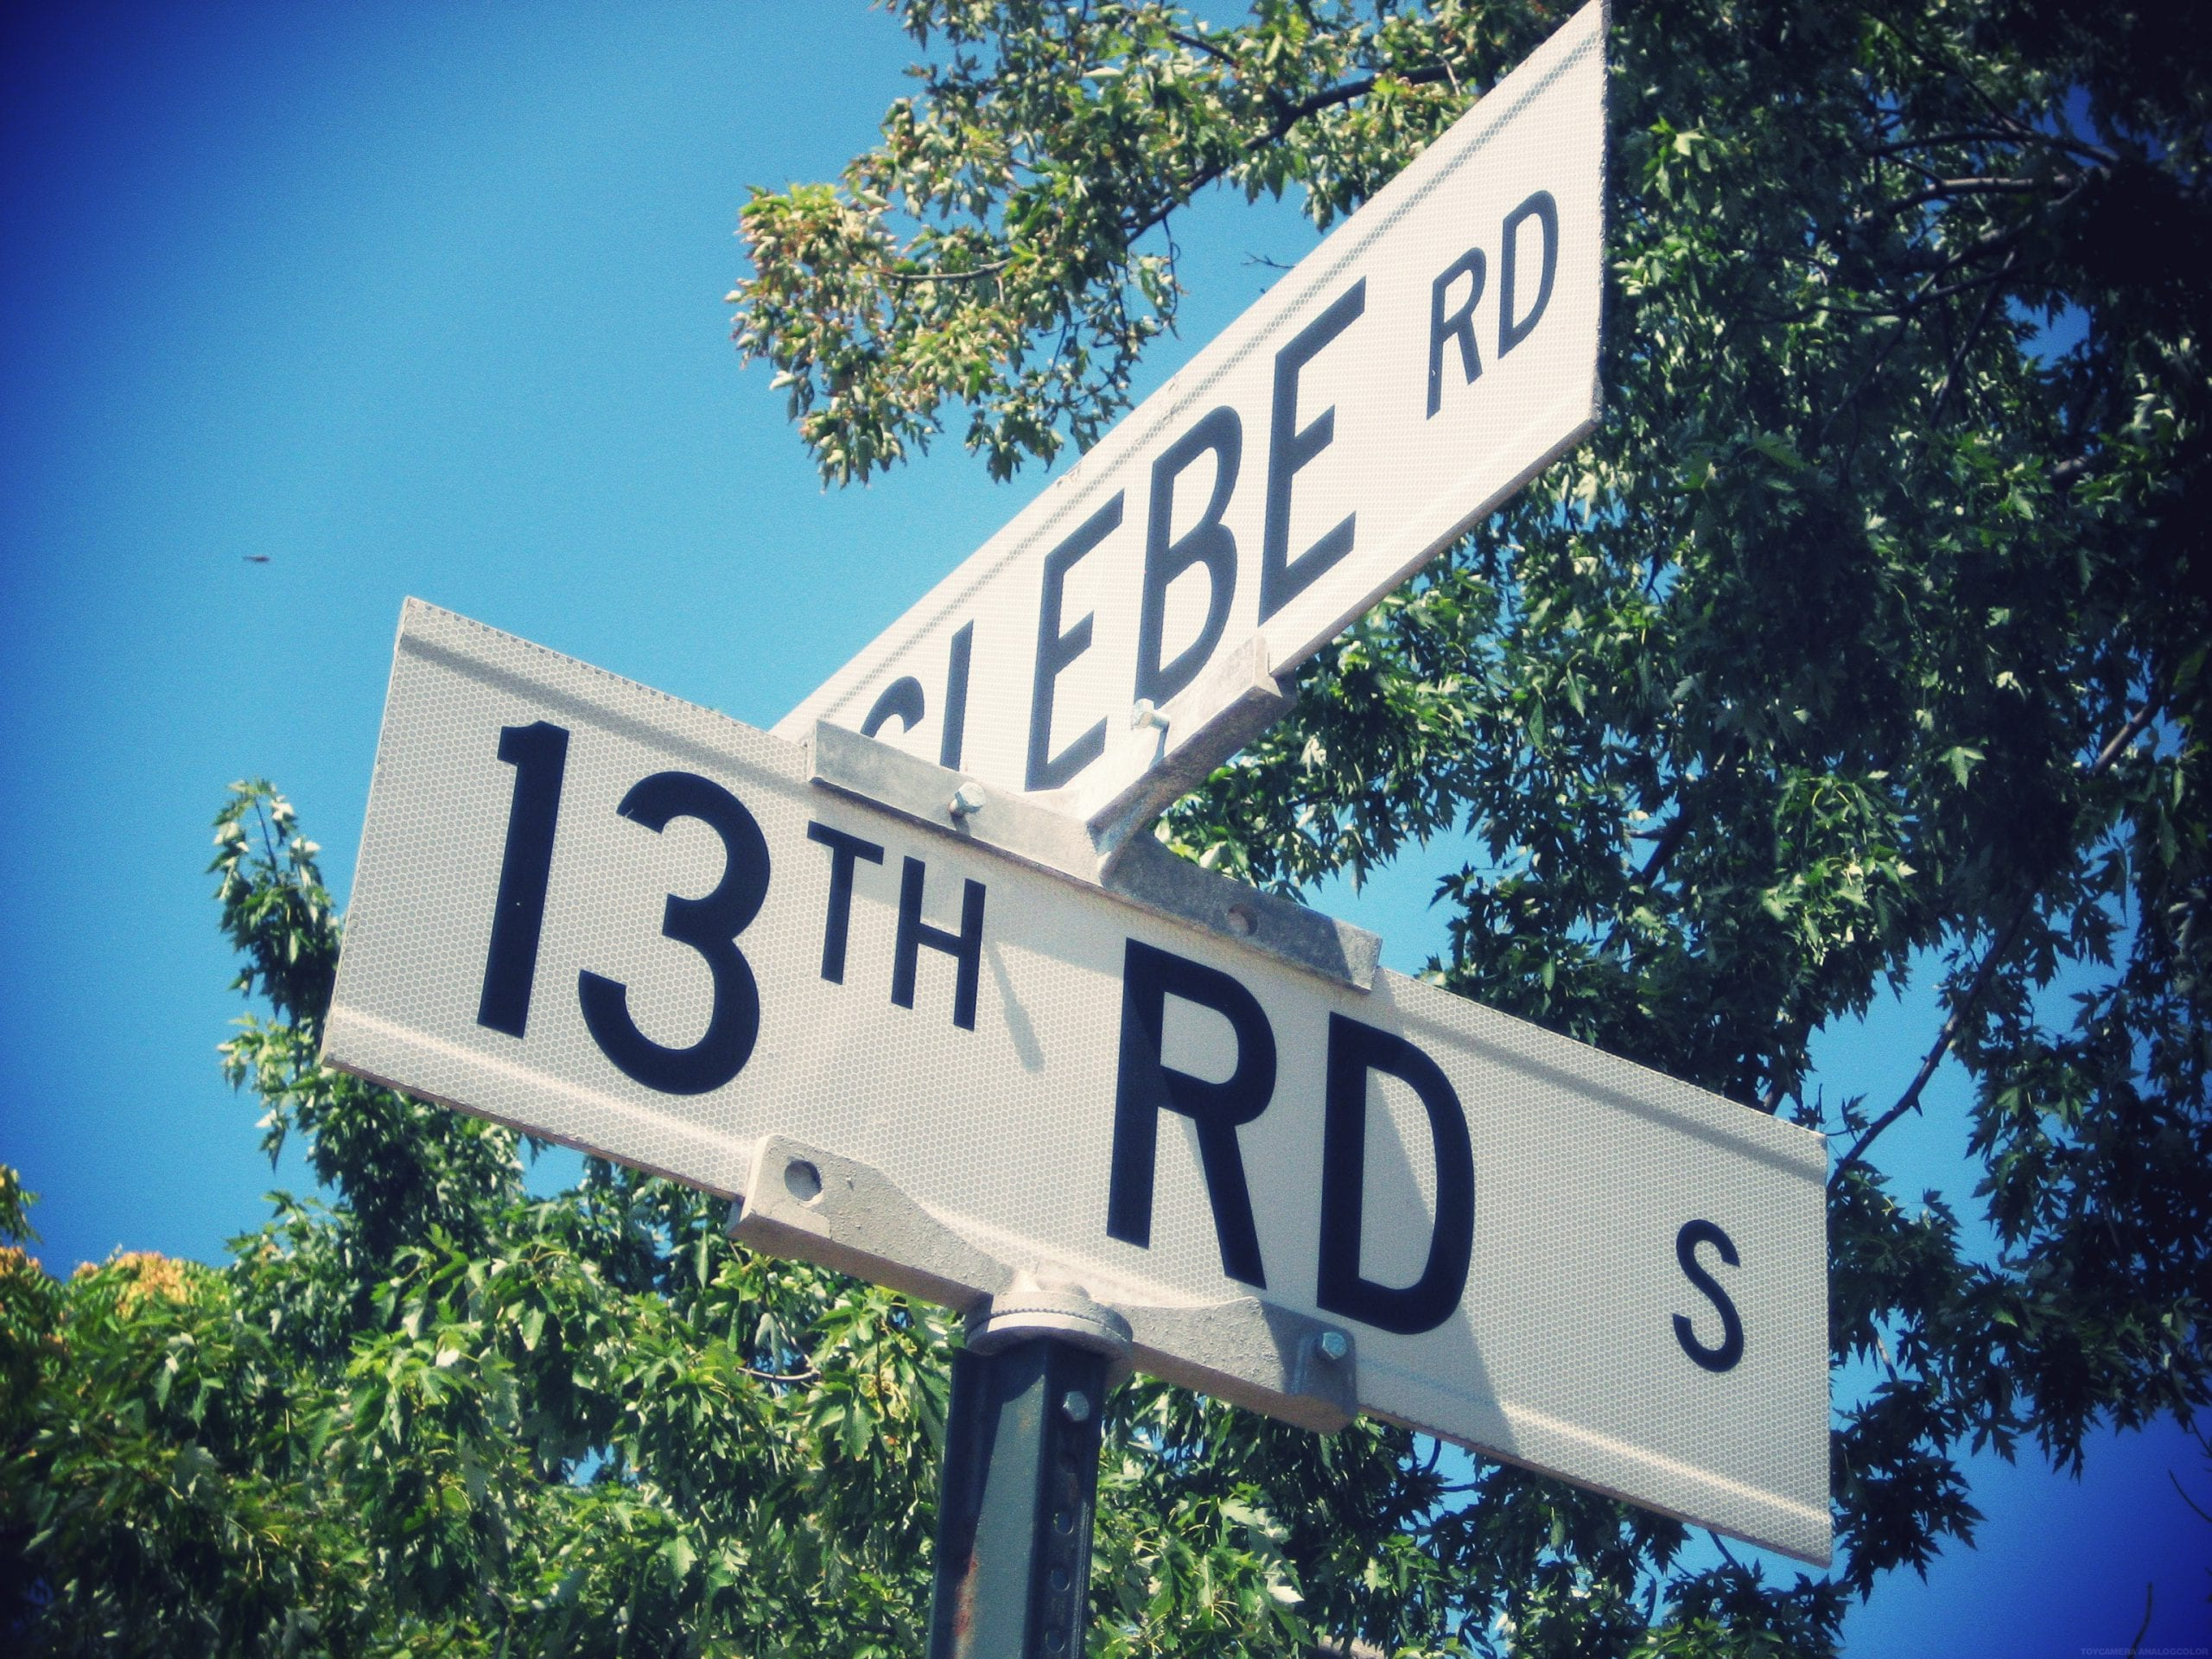 Why Is It Named Glebe Road in Arlington?